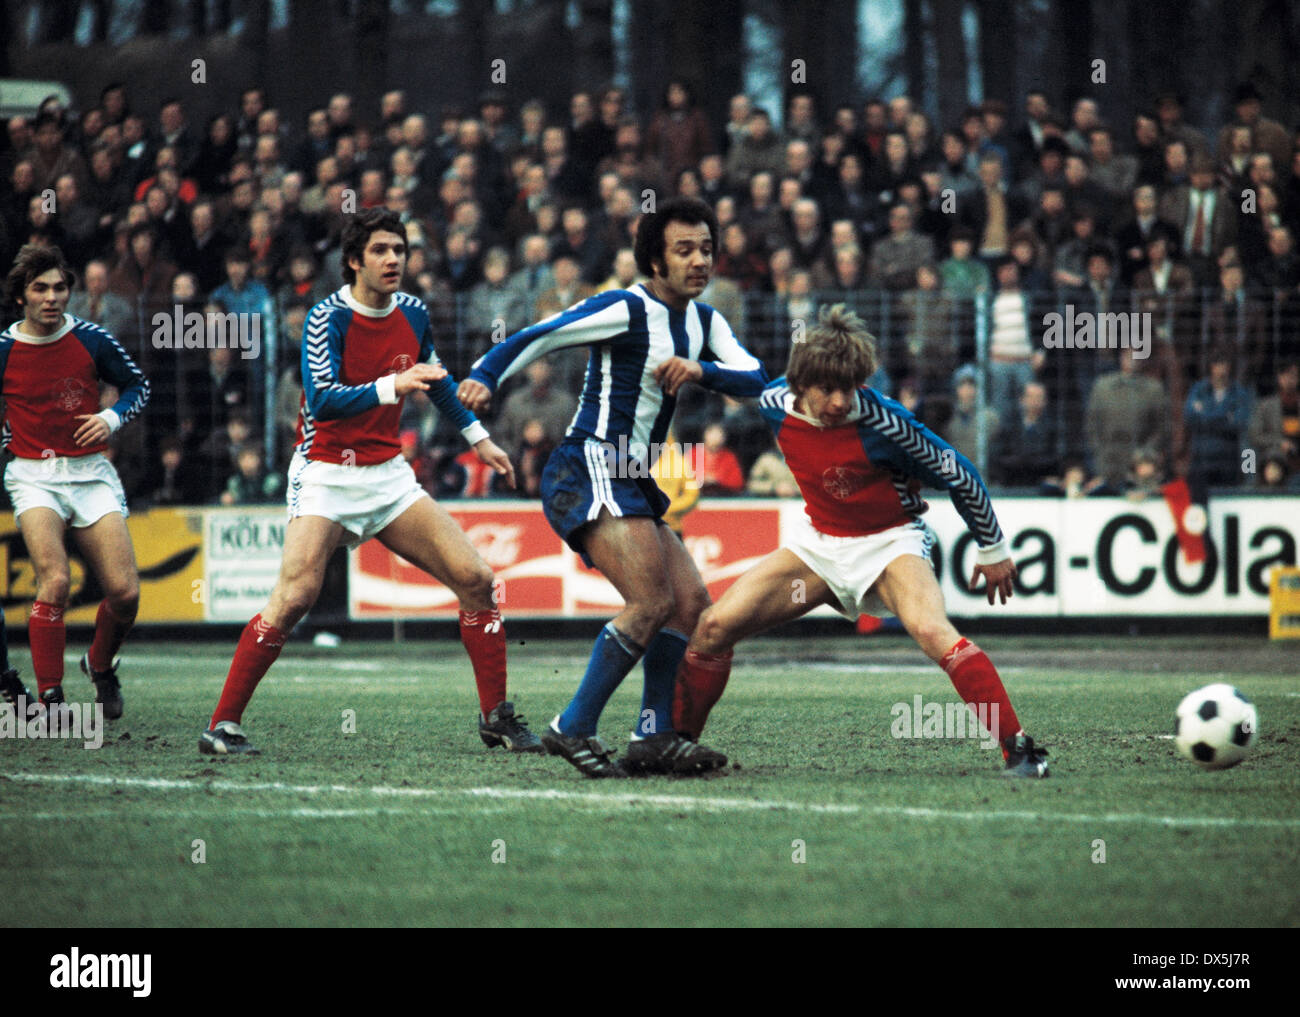 football, Bundesliga, 1975/1976, Grotenburg Stadium, FC Bayer 05 Uerdingen versus Hertha BSC Berlin 1:1, scene of the match, f.l.t.r. Edmund Stieber (05), Paul Hahn (05), Erwin Kostedde (Hertha), Norbert Brinkmann (05) - Stock Image